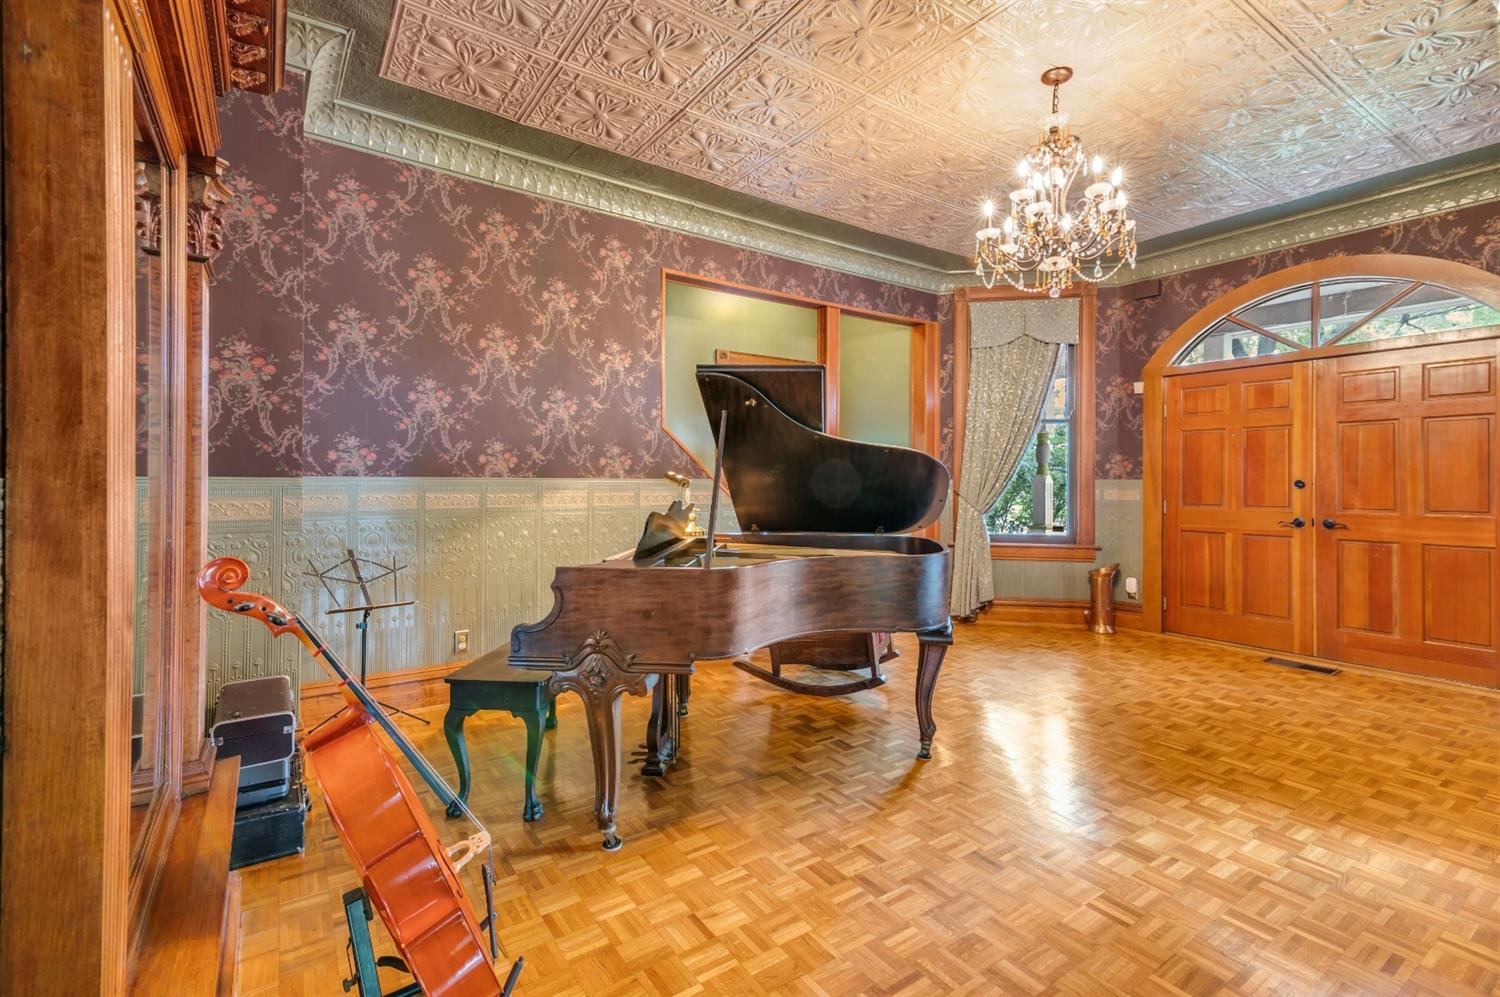 Stunning entry foyer with original tin ceiling, parquet floors and French doors.  This historic home has the original windows in the front of the house in this historic area, but the rest has replacement windows.